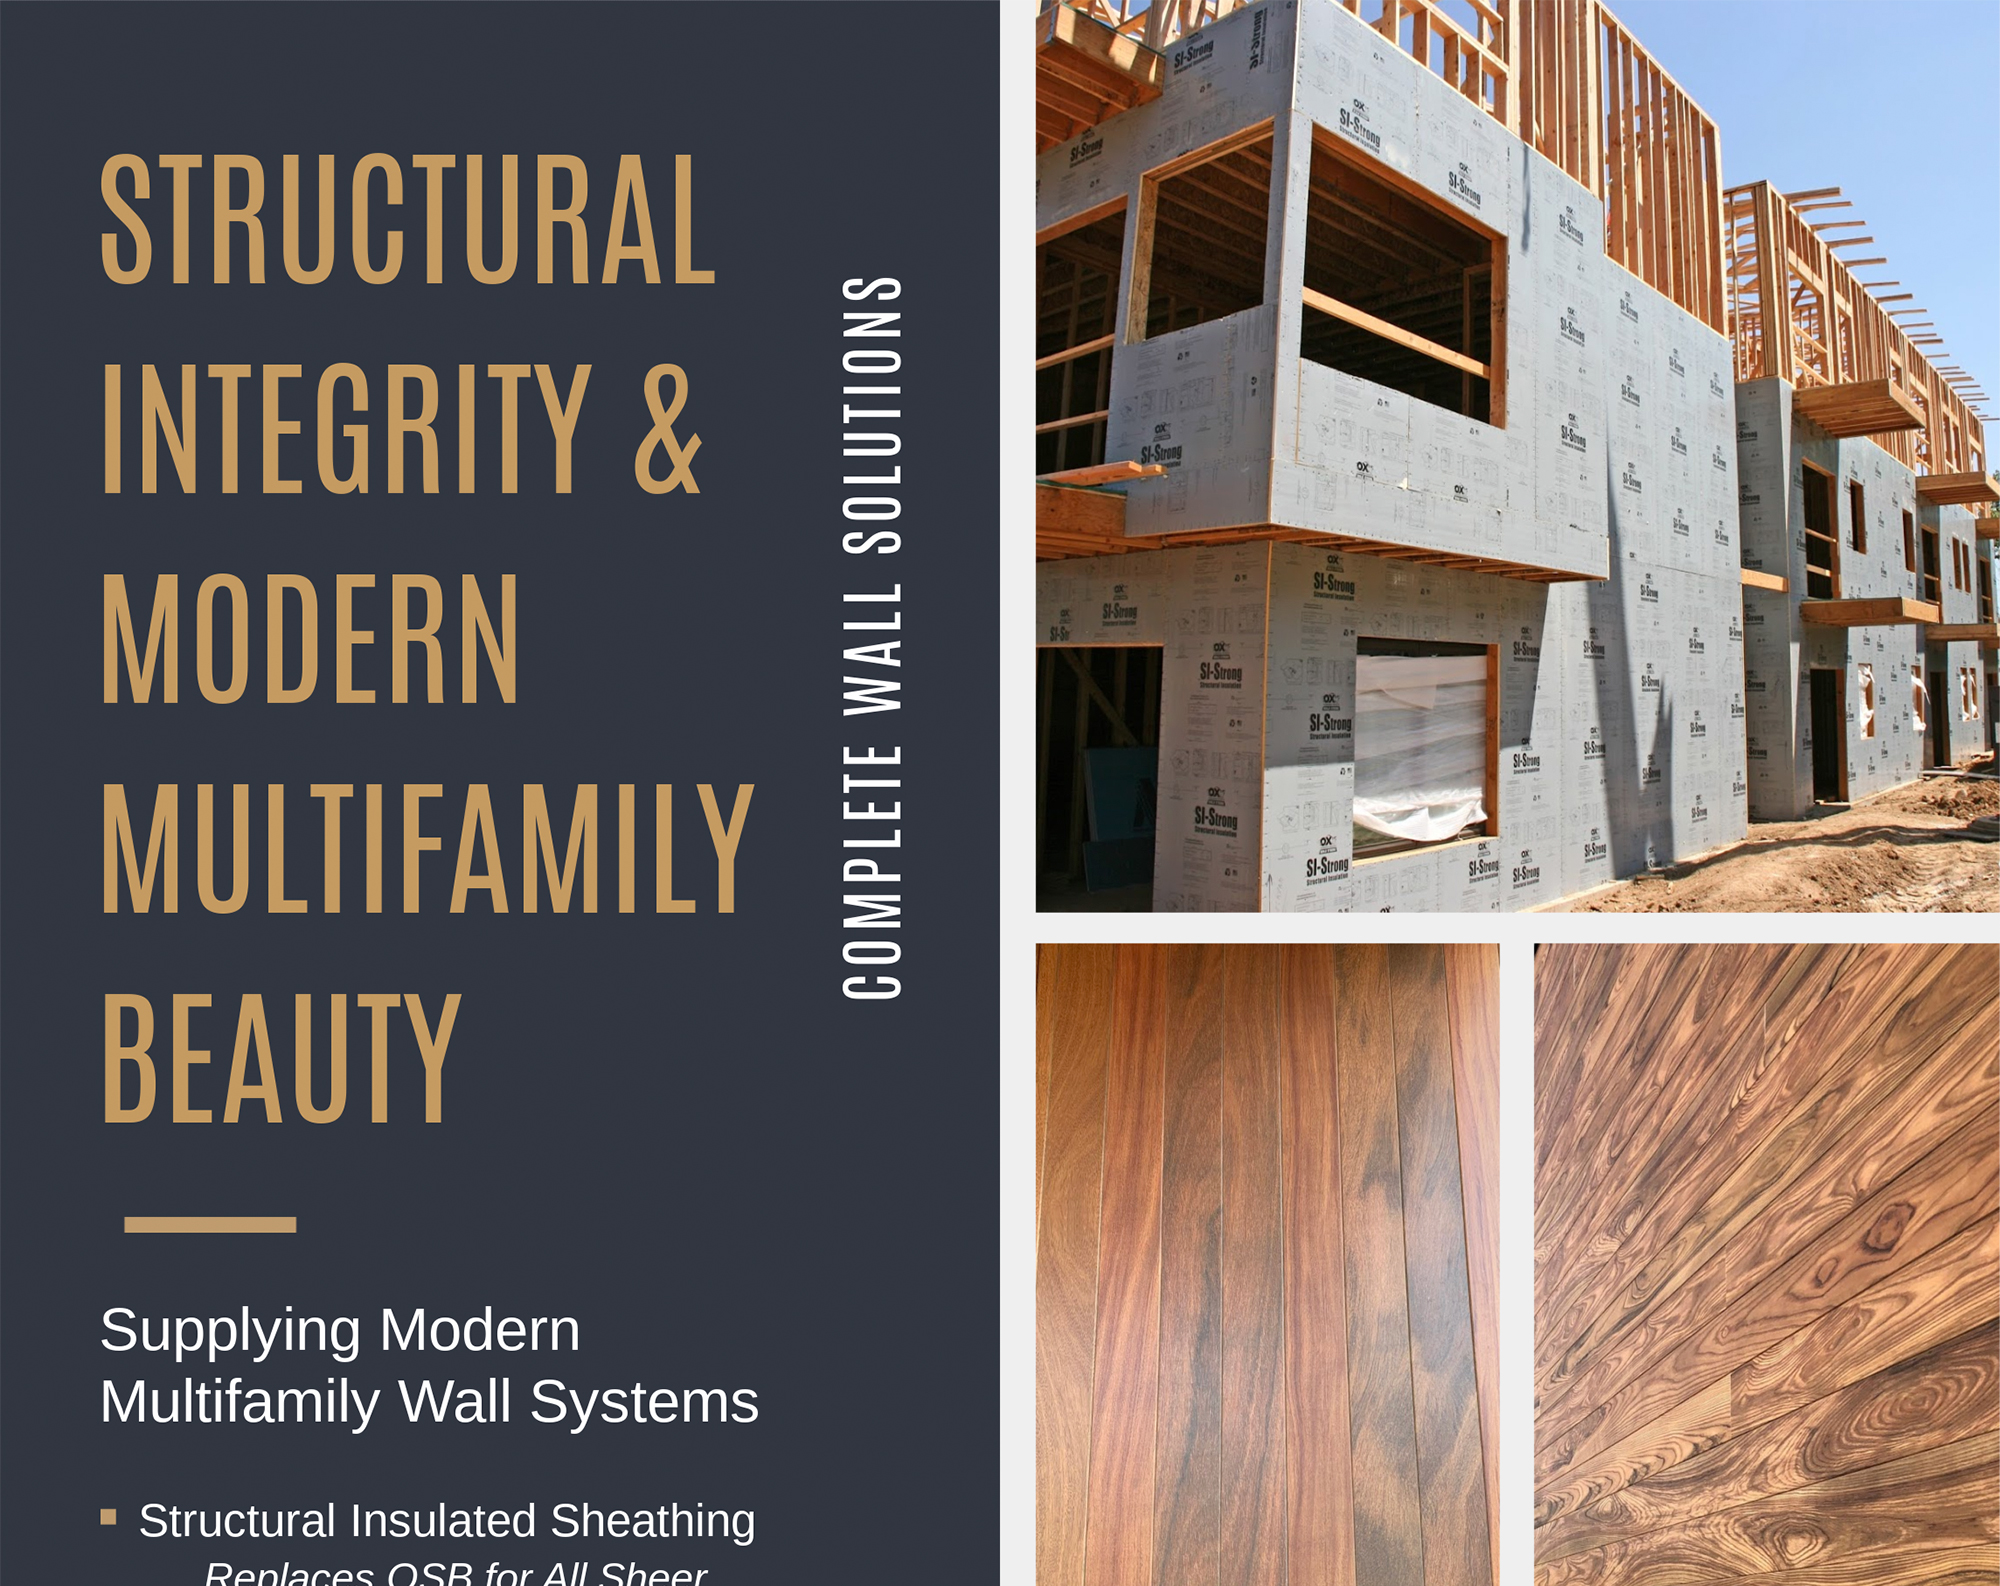 Structural Integrity and Modern Materials Multifamily Beauty